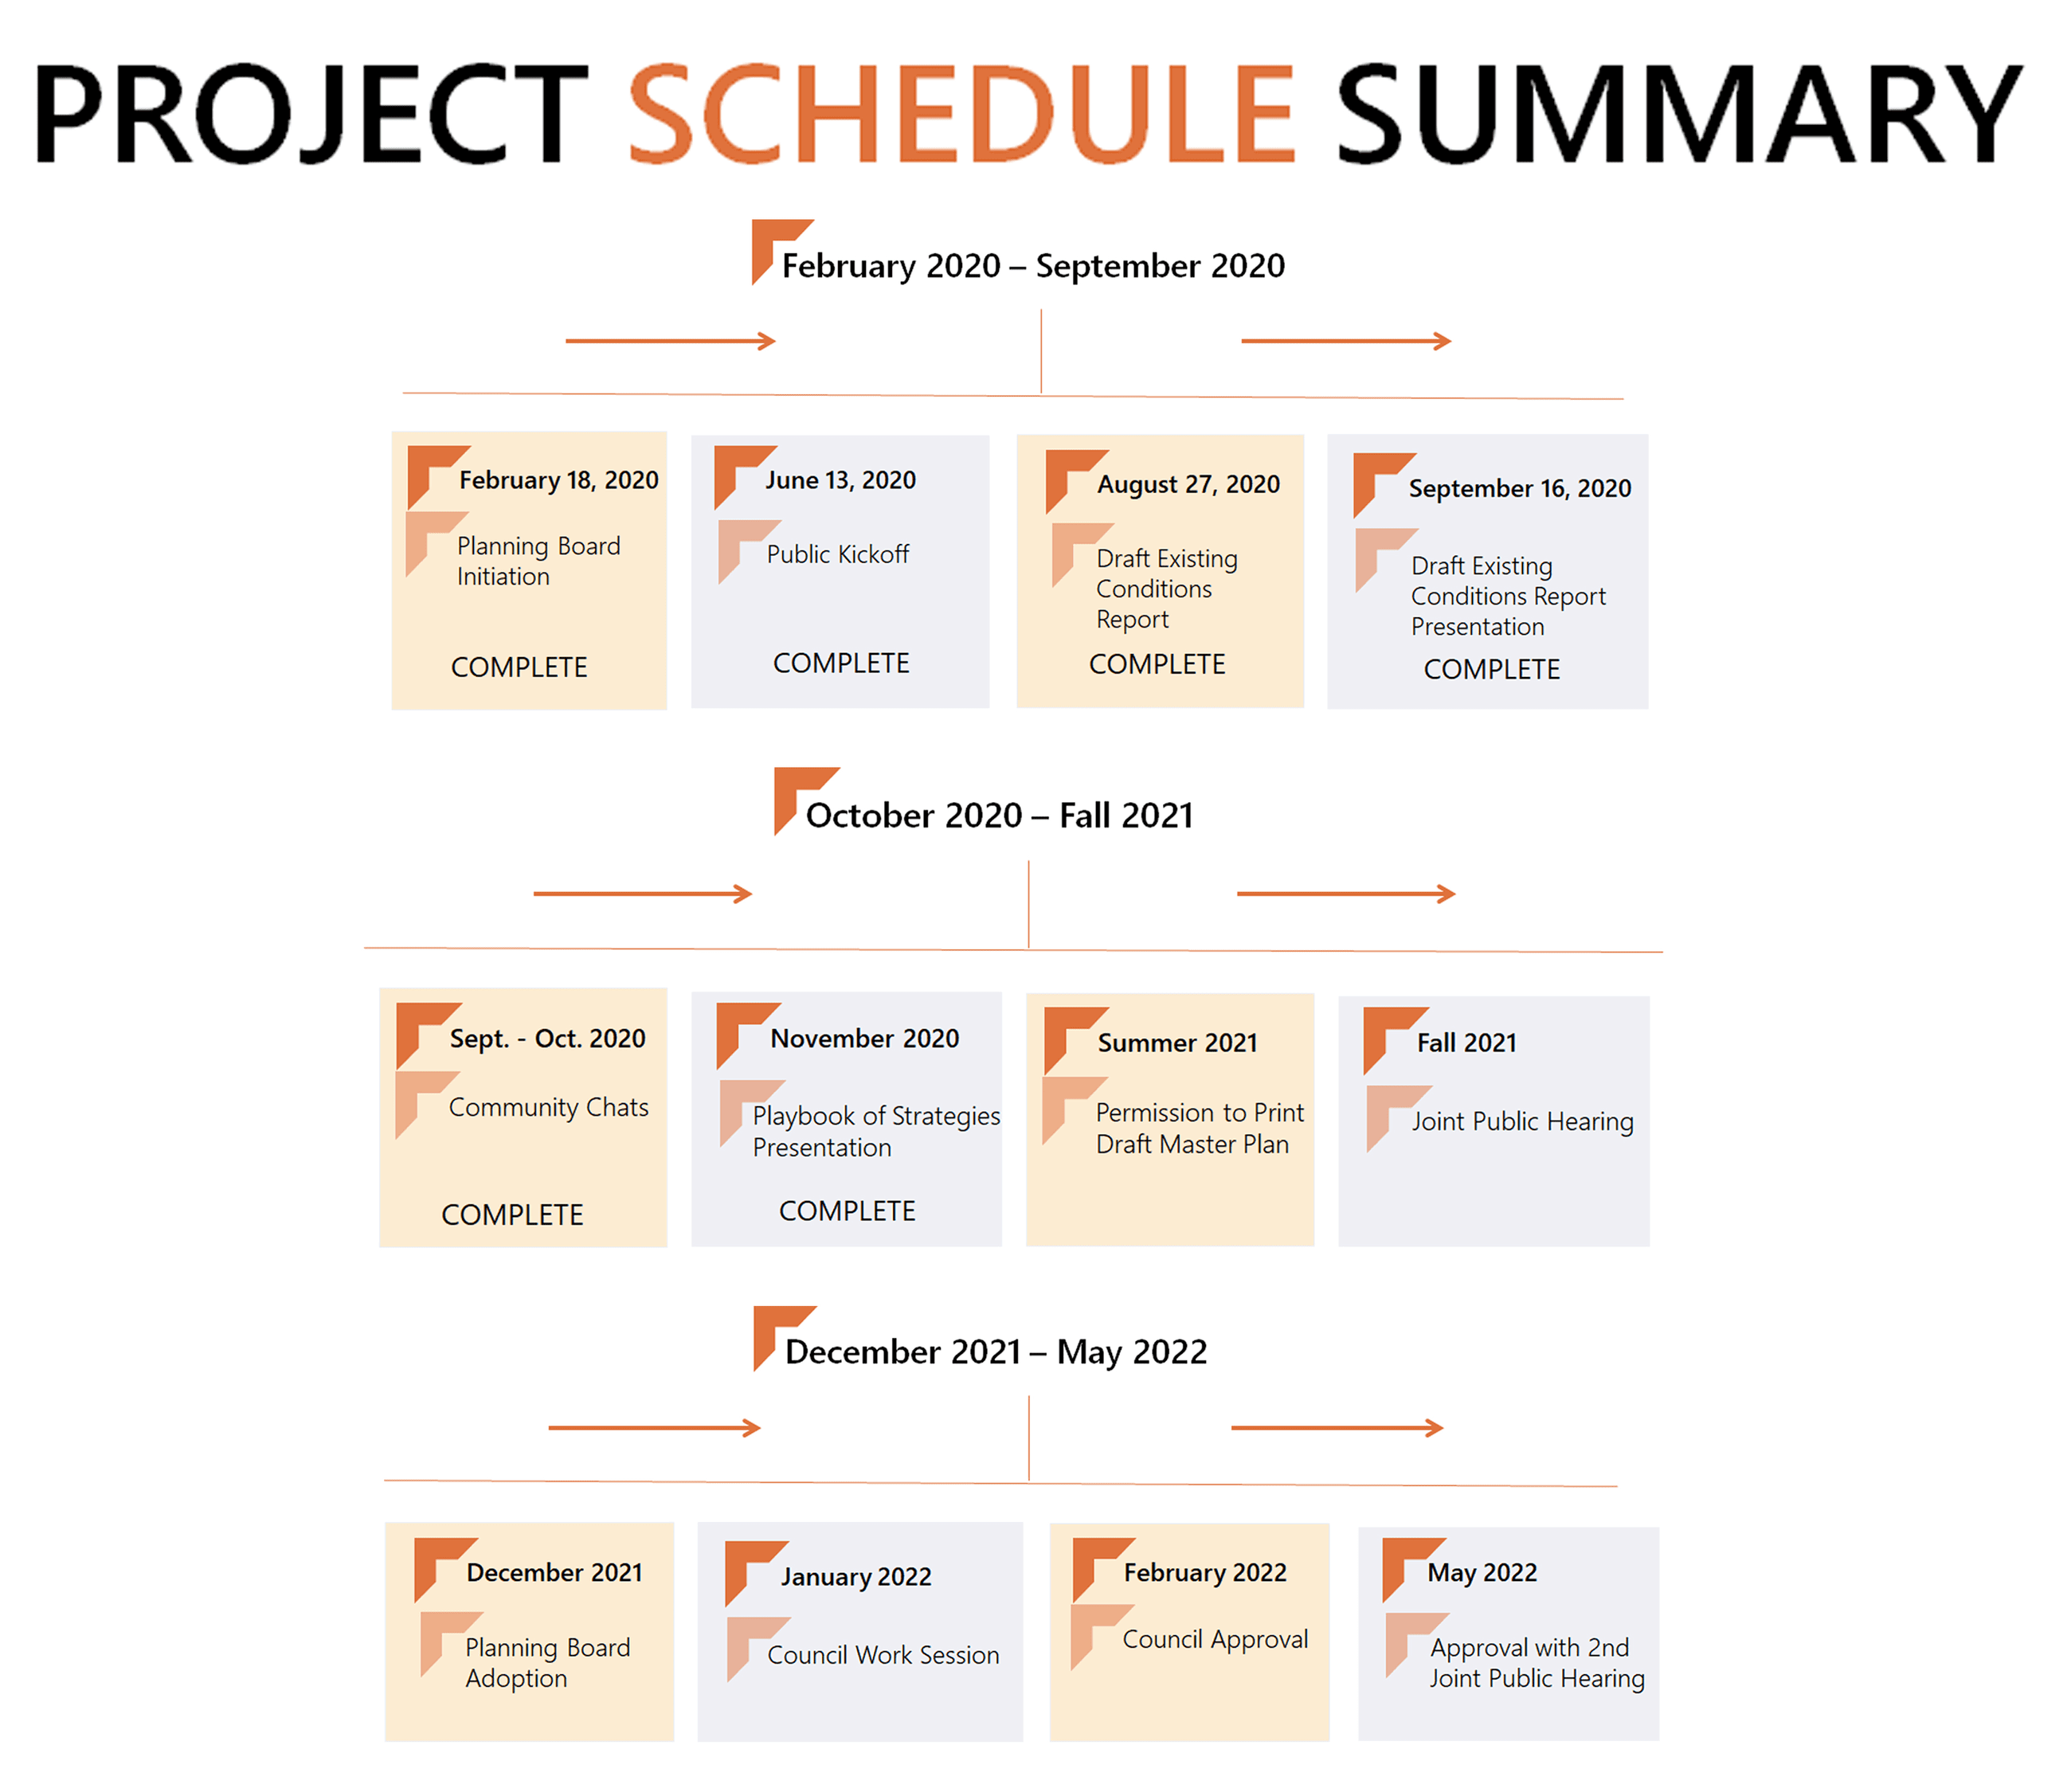 Project Schedule Summary_updated 11302020